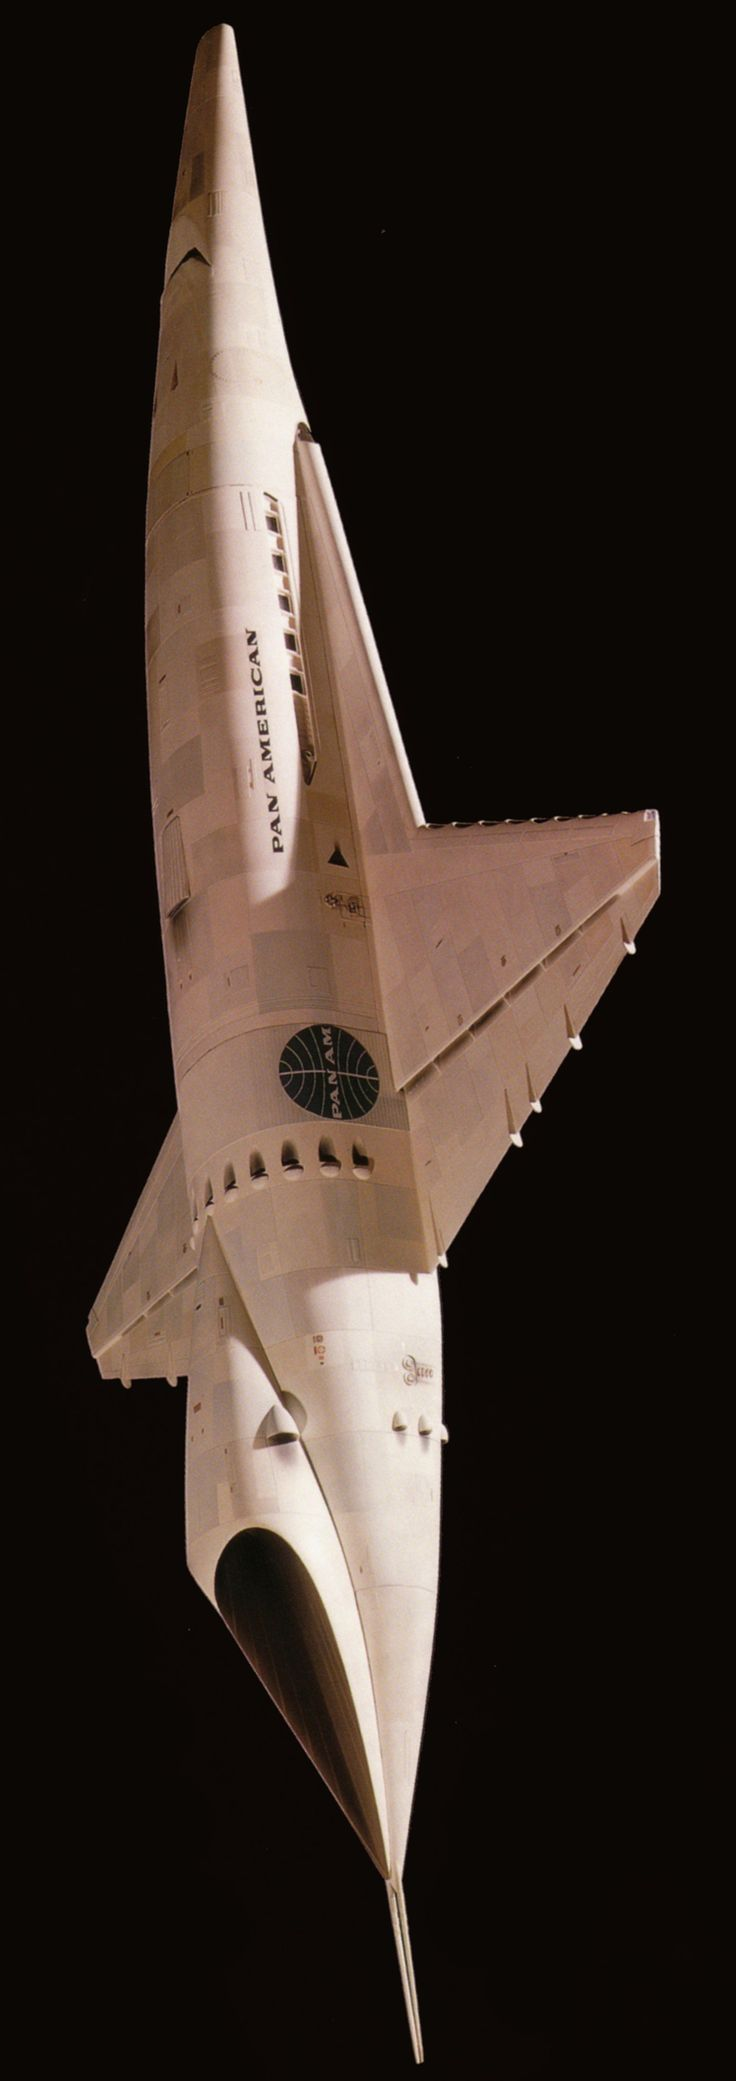 The Foundry Community :: Forums :: Orion Space Plane: 2001 A Space Odyssey